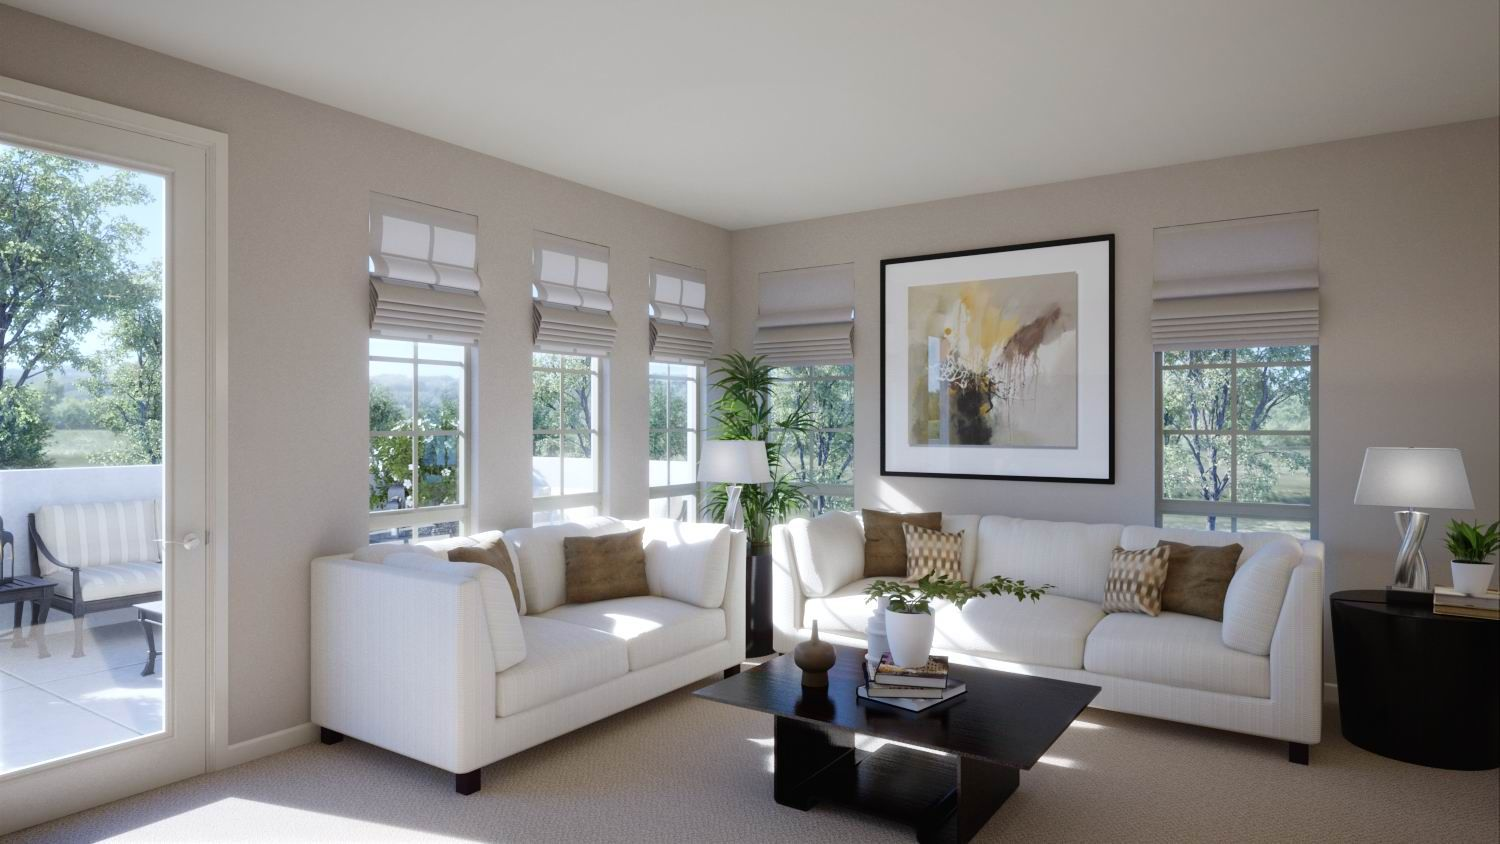 Envision hosting your guests in this glamorous space…